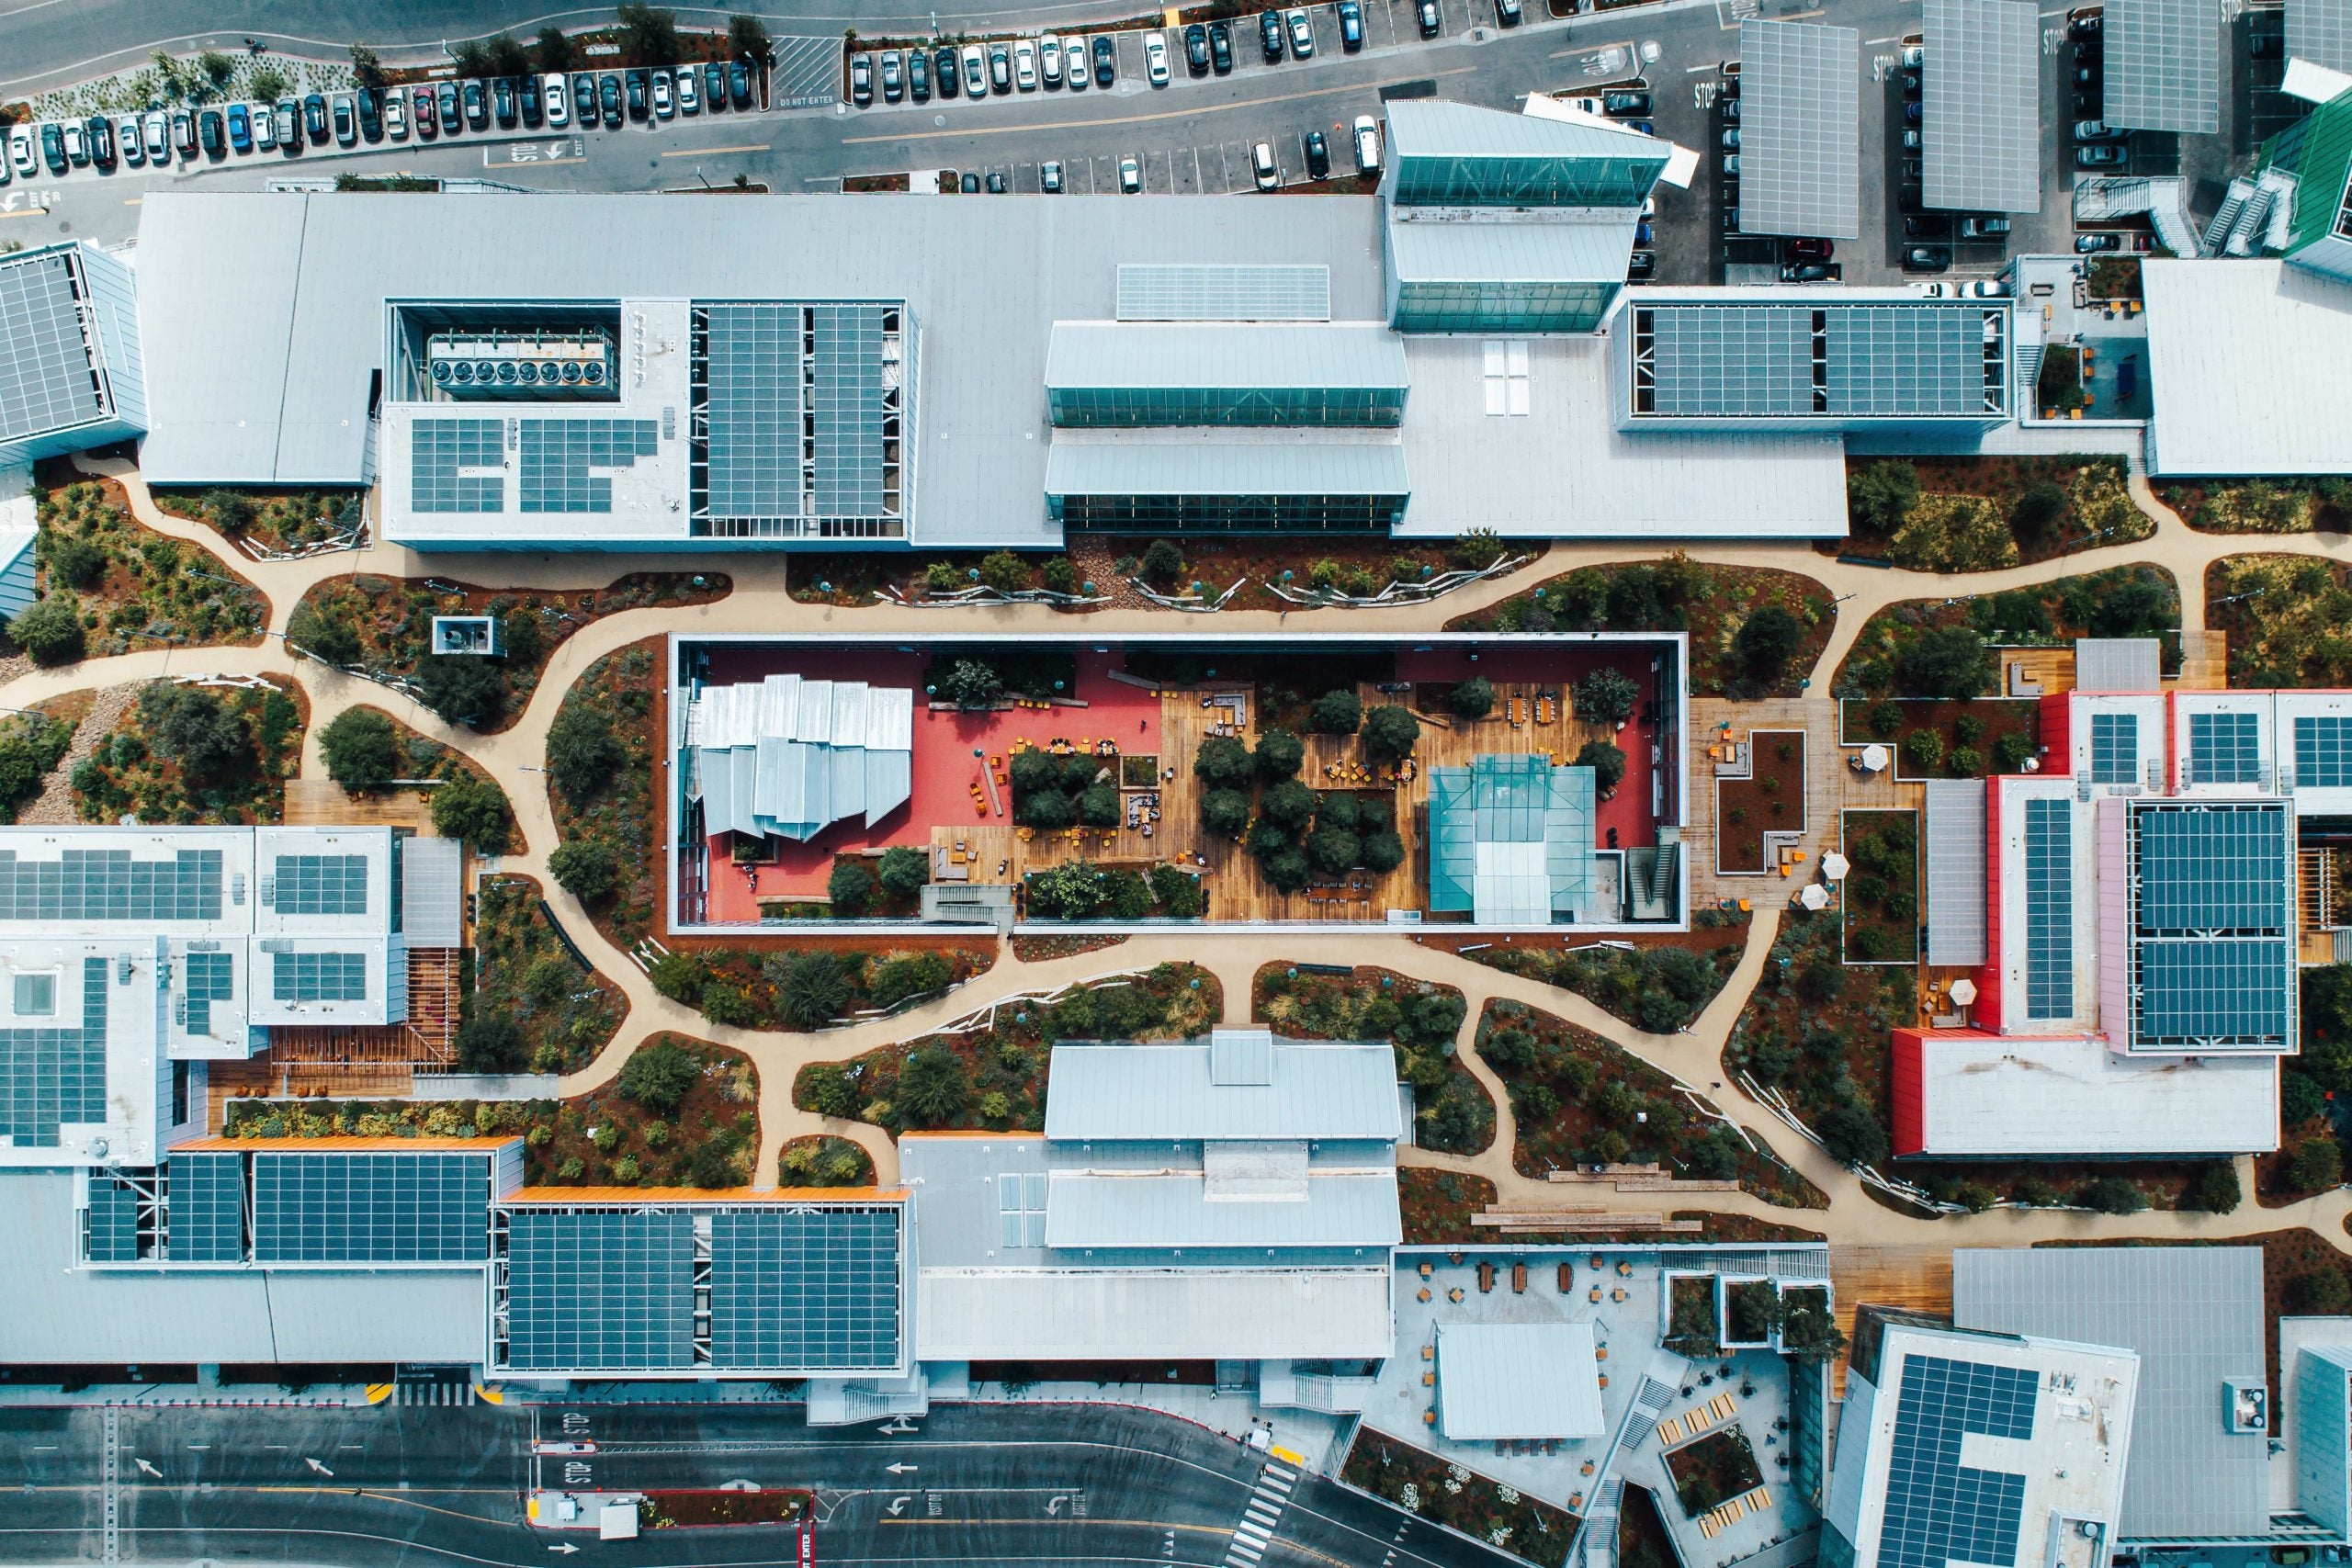 What Facebook's empty campus says about the post-Covid world